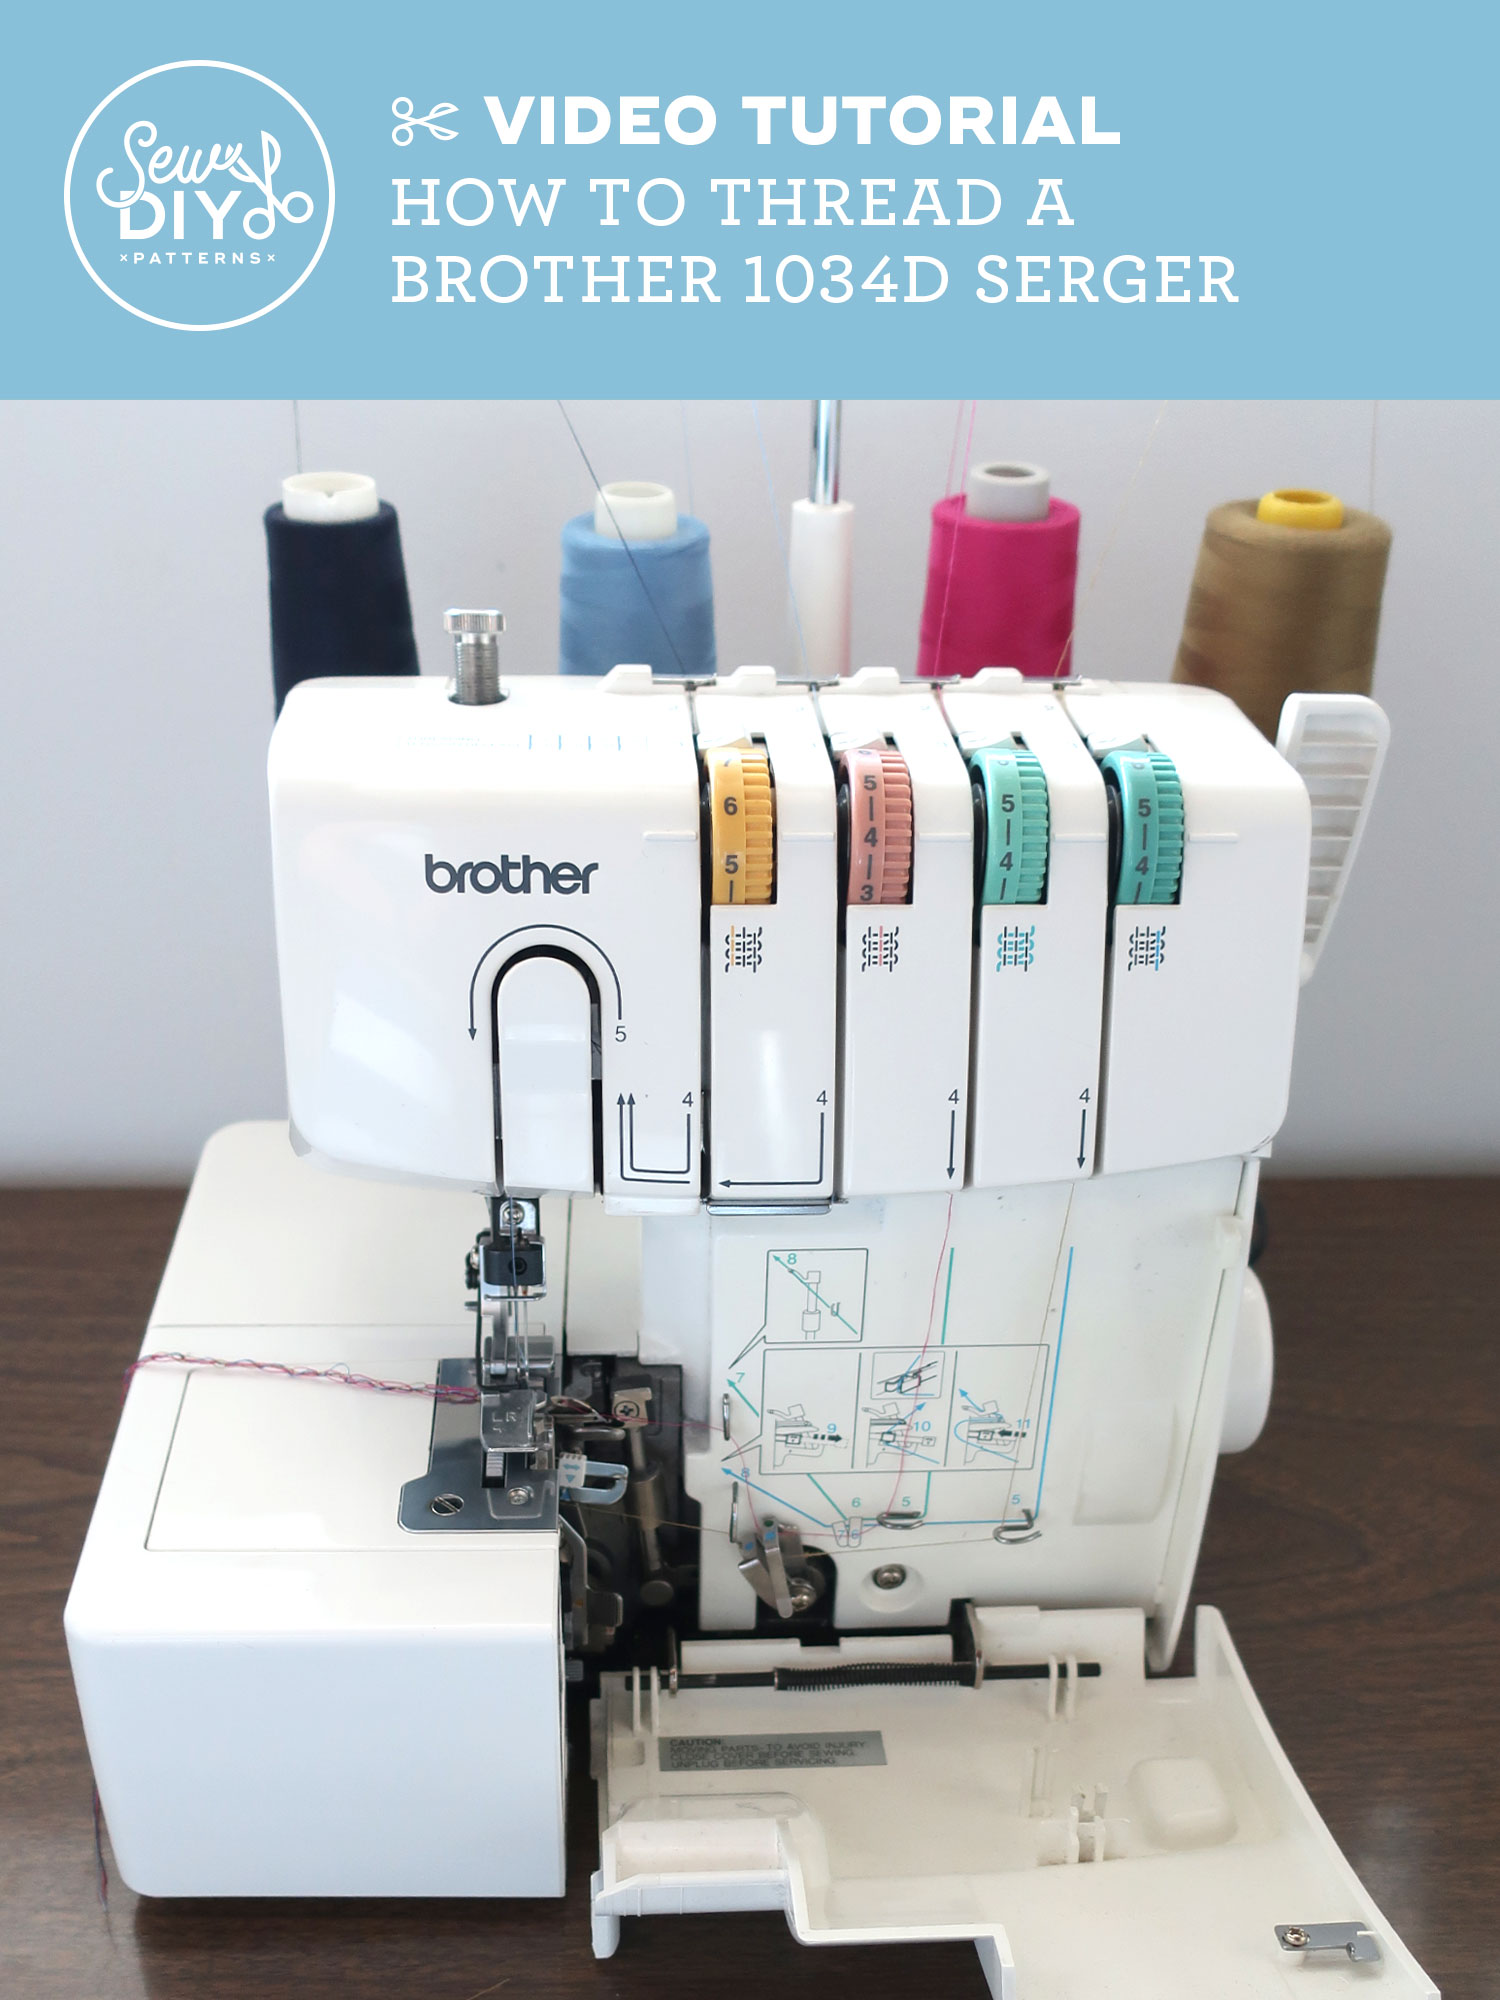 VIDEO TUTORIAL How to Thread a Brother 1034D Serger from Sew DIY